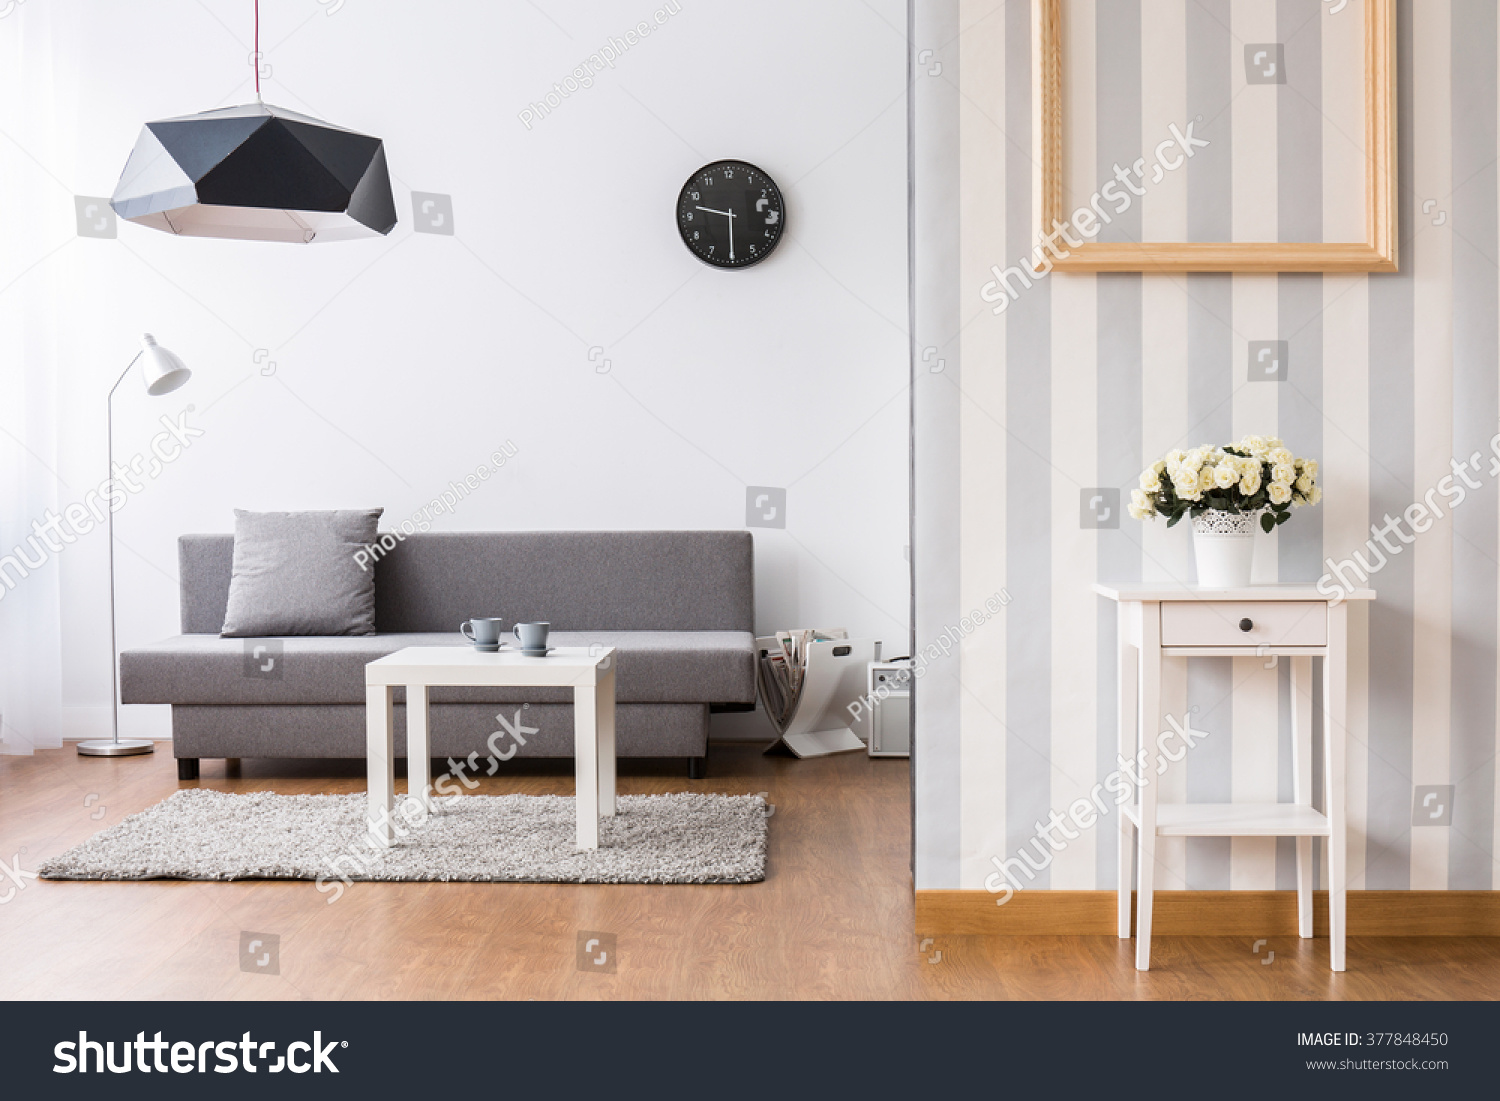 Stylish Living Room With Grey Sofa And Small Coffee Table